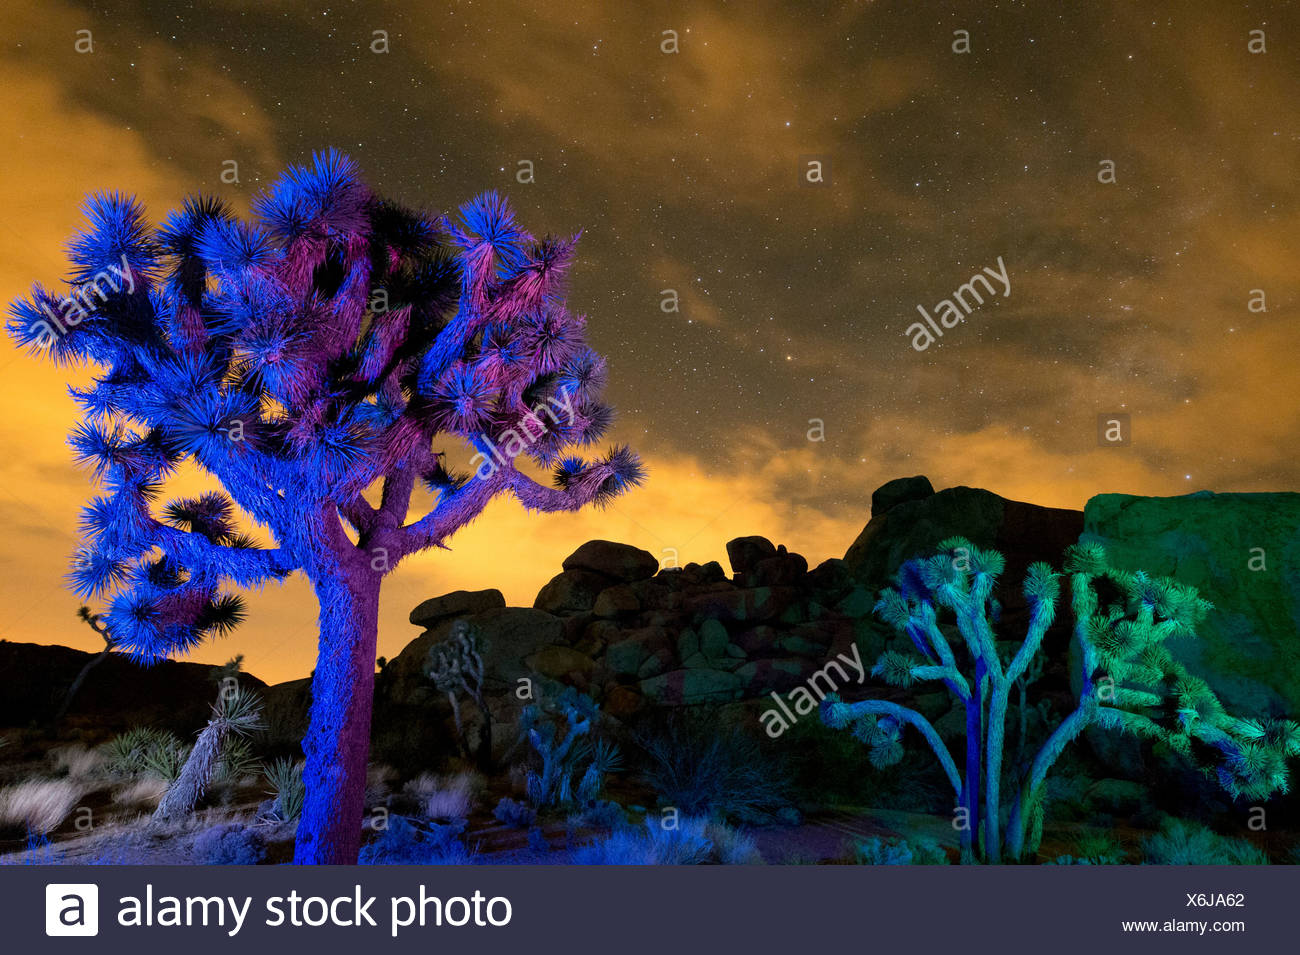 Bunte Lichter auf Joshua Bäume in der Nacht, Joshua Tree Nationalpark, Kalifornien, USA Stockbild